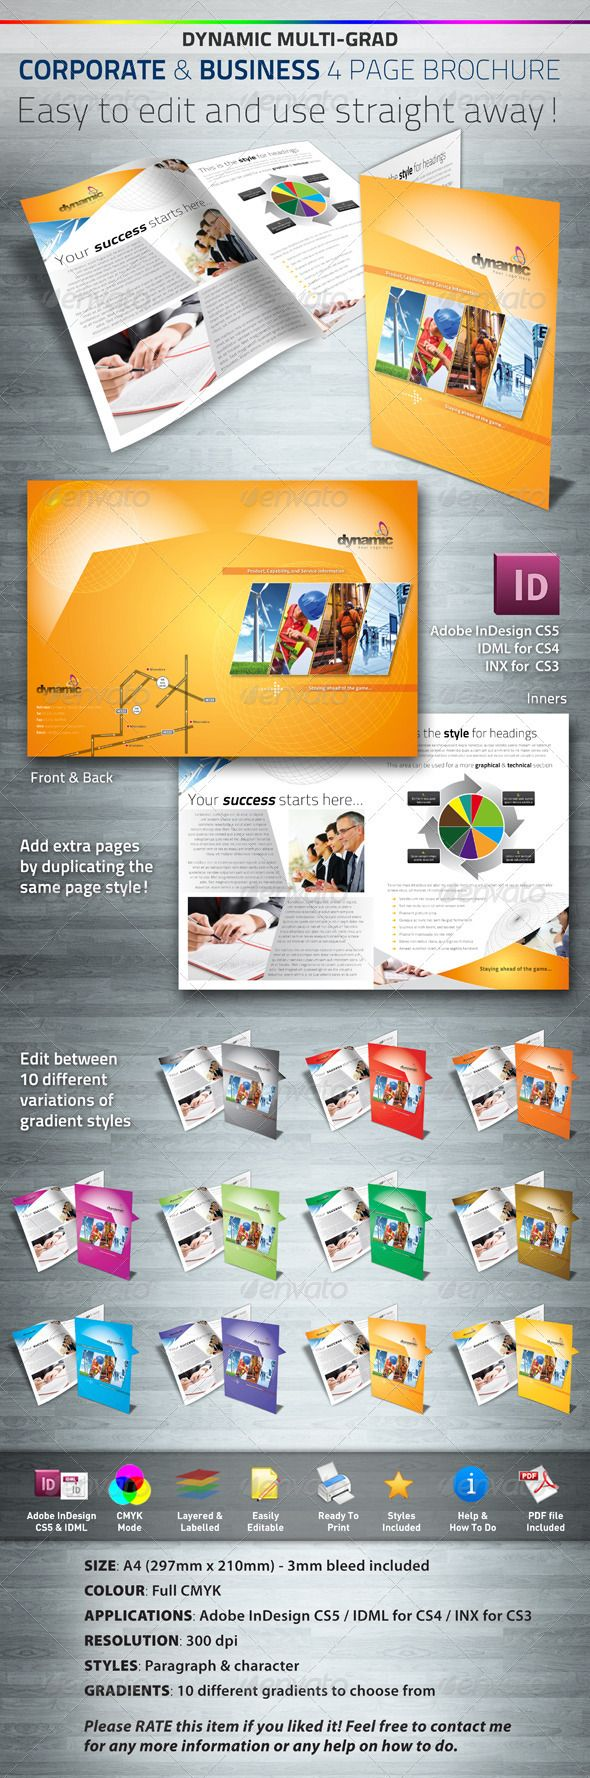 Dynamic Corporate Business Page Brochure Pinterest Corporate - Four page brochure template